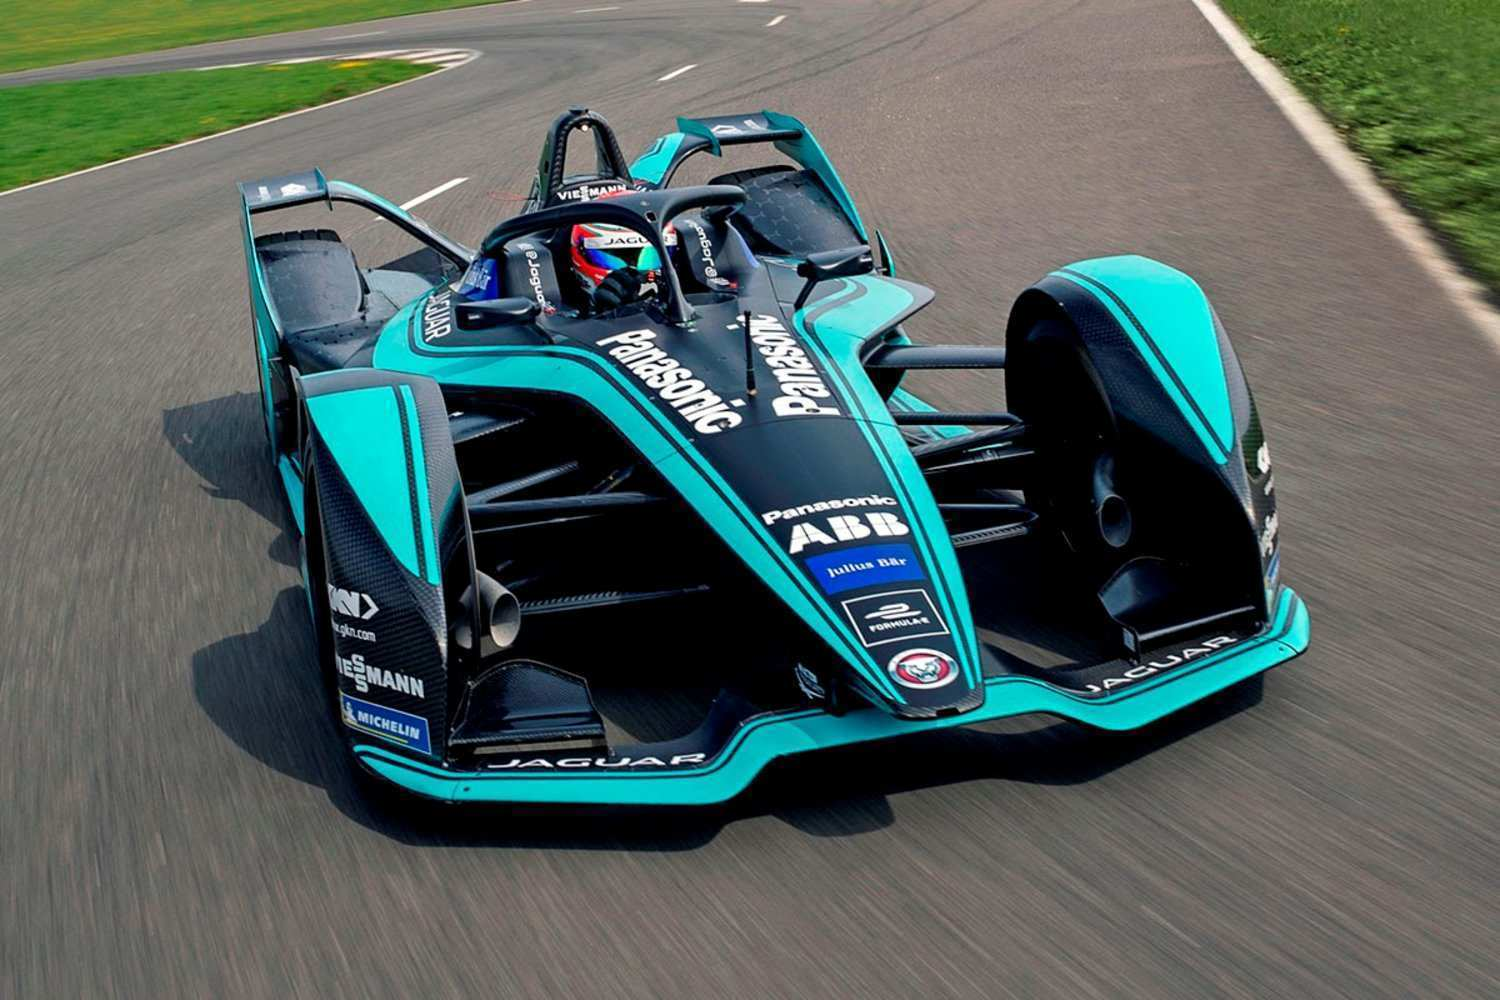 91 A Jaguar F1 2019 Review And Release Date